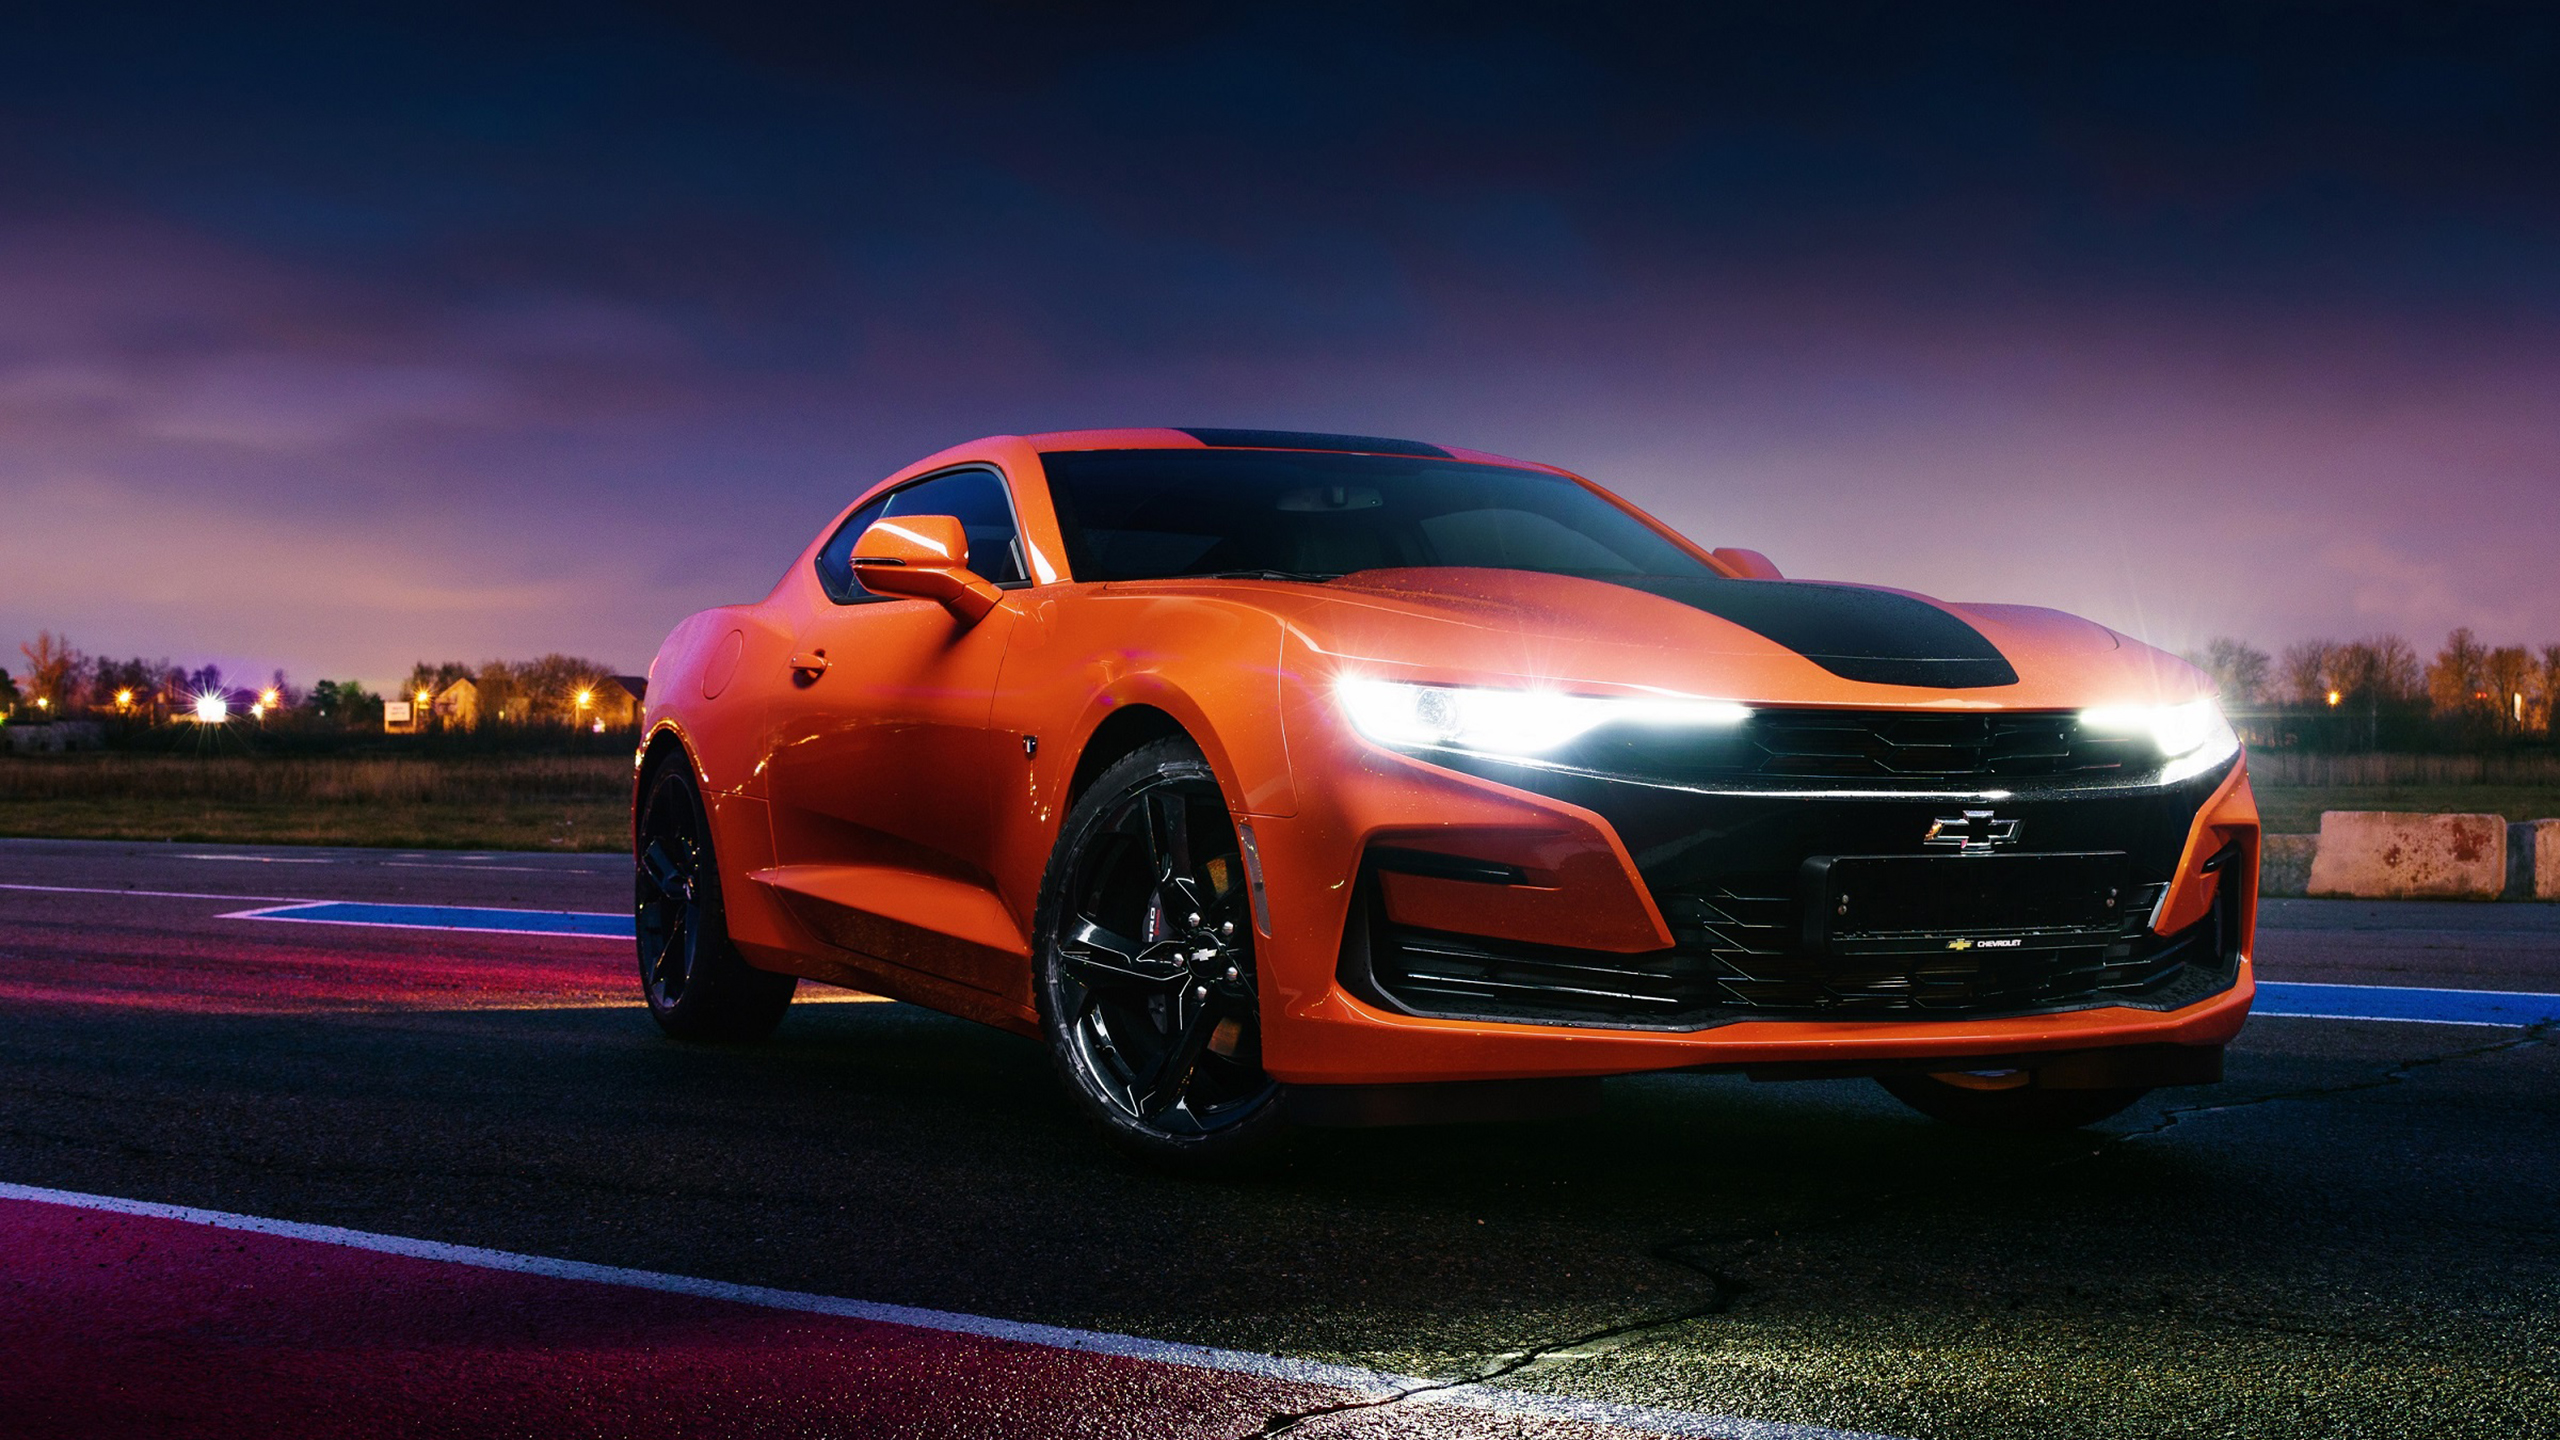 Chevrolet HD Desktop Wallpapers for K Ultra